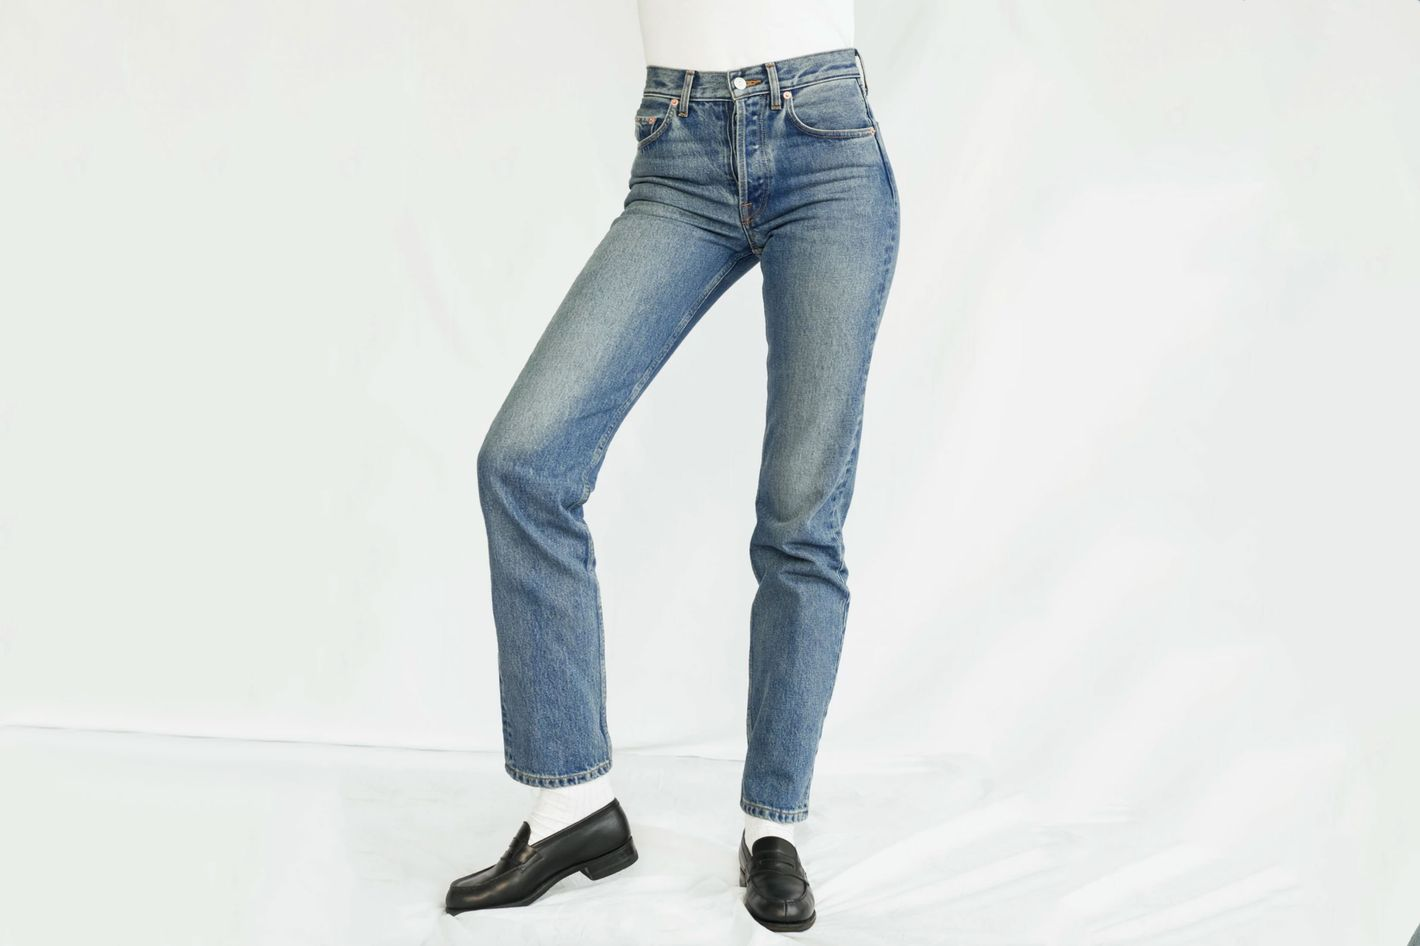 The Feel Studio The Genuine Jean